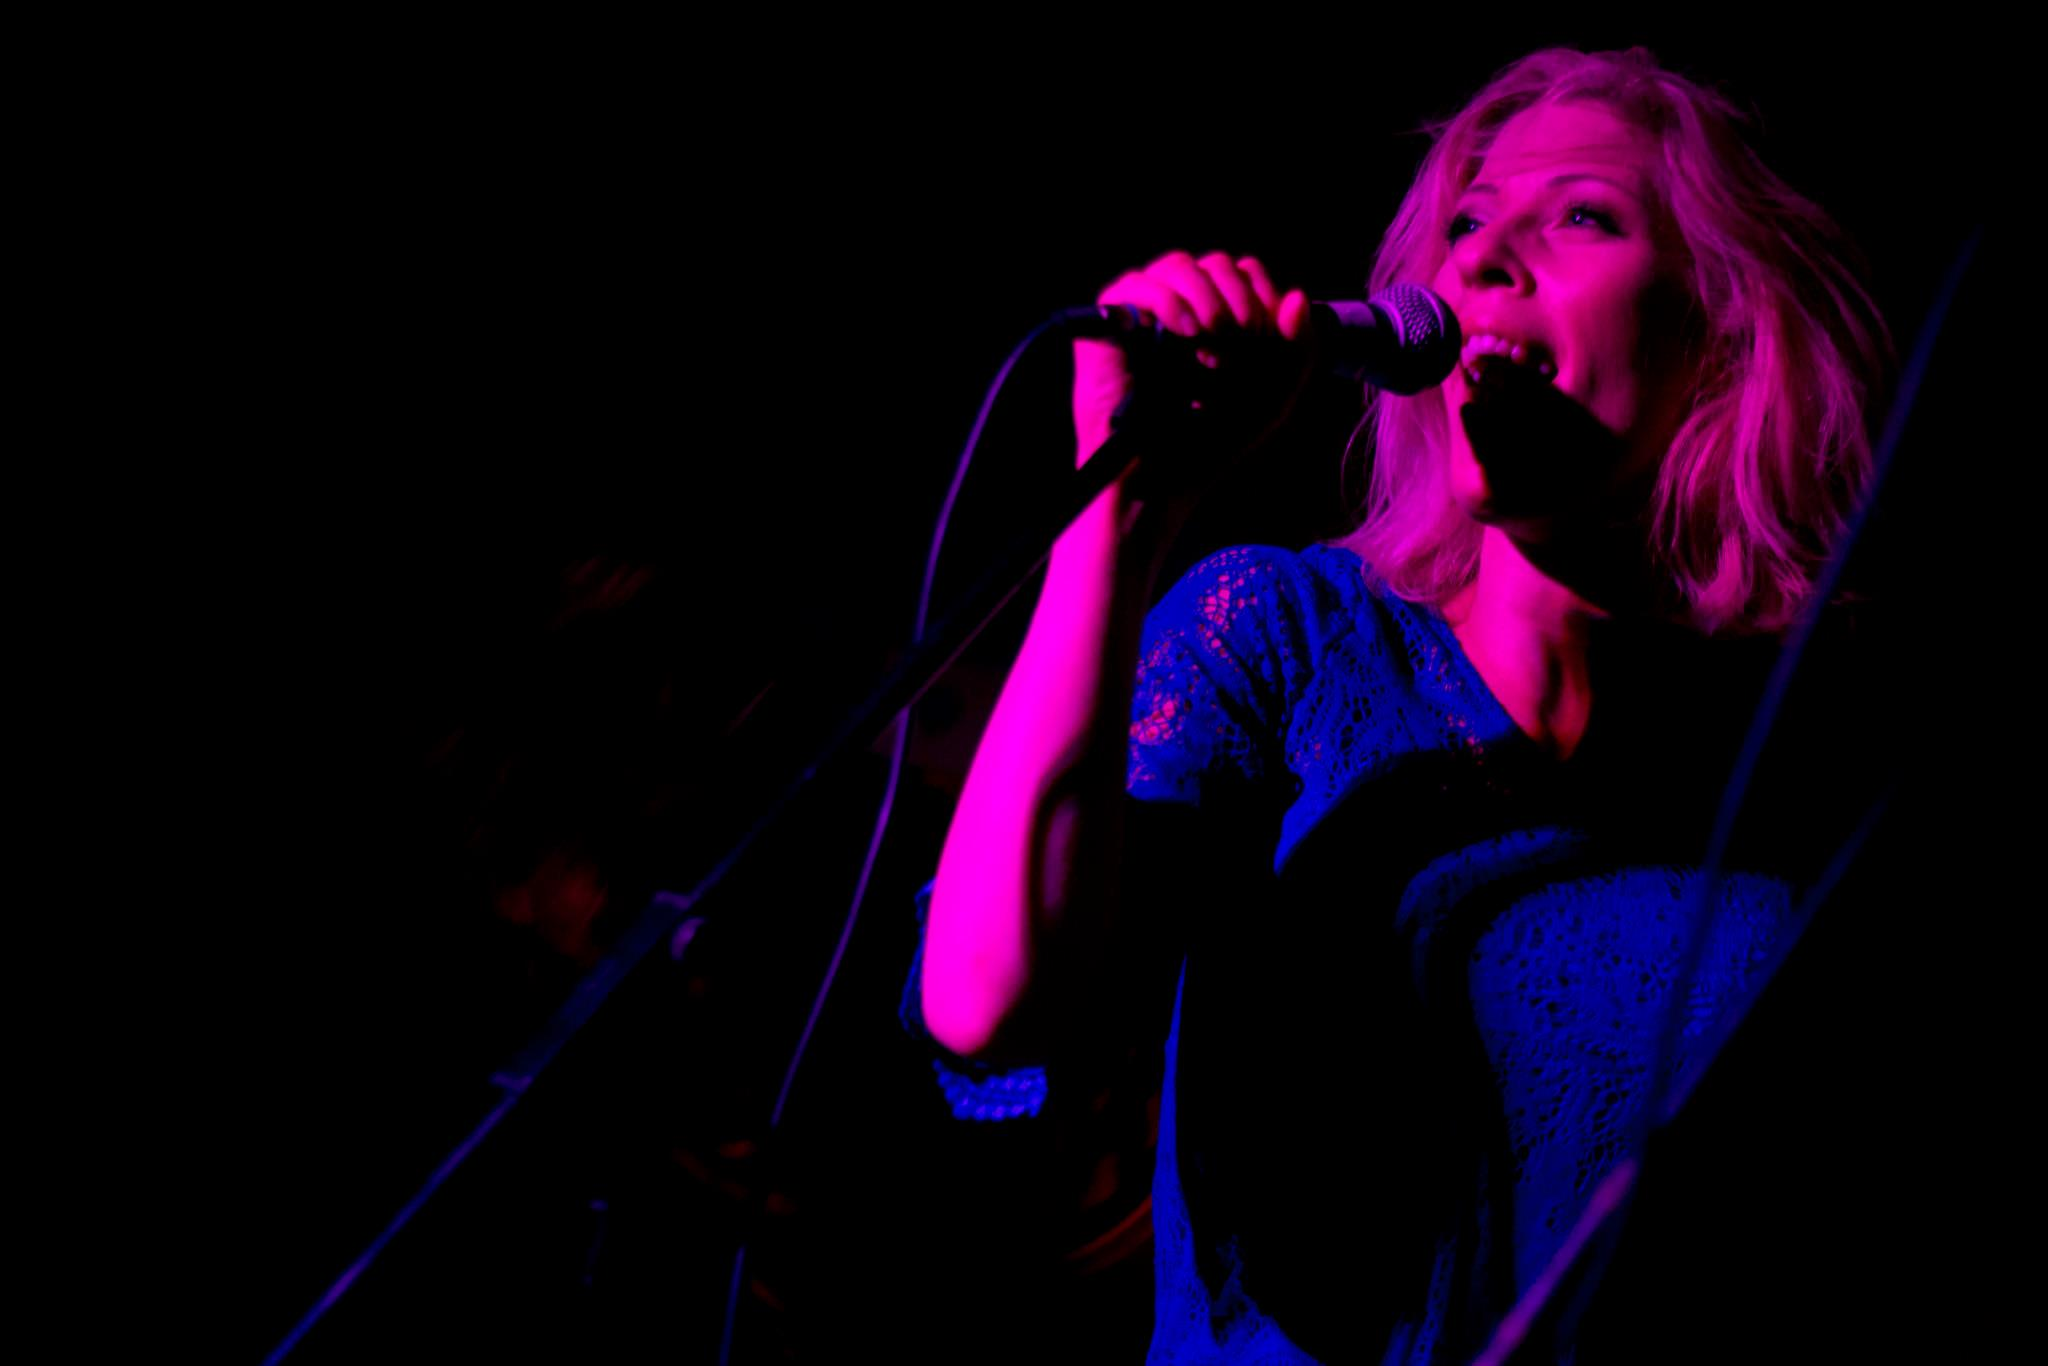 AVAKHAN Lead singer Ava Eckermann at Powers Bar in London